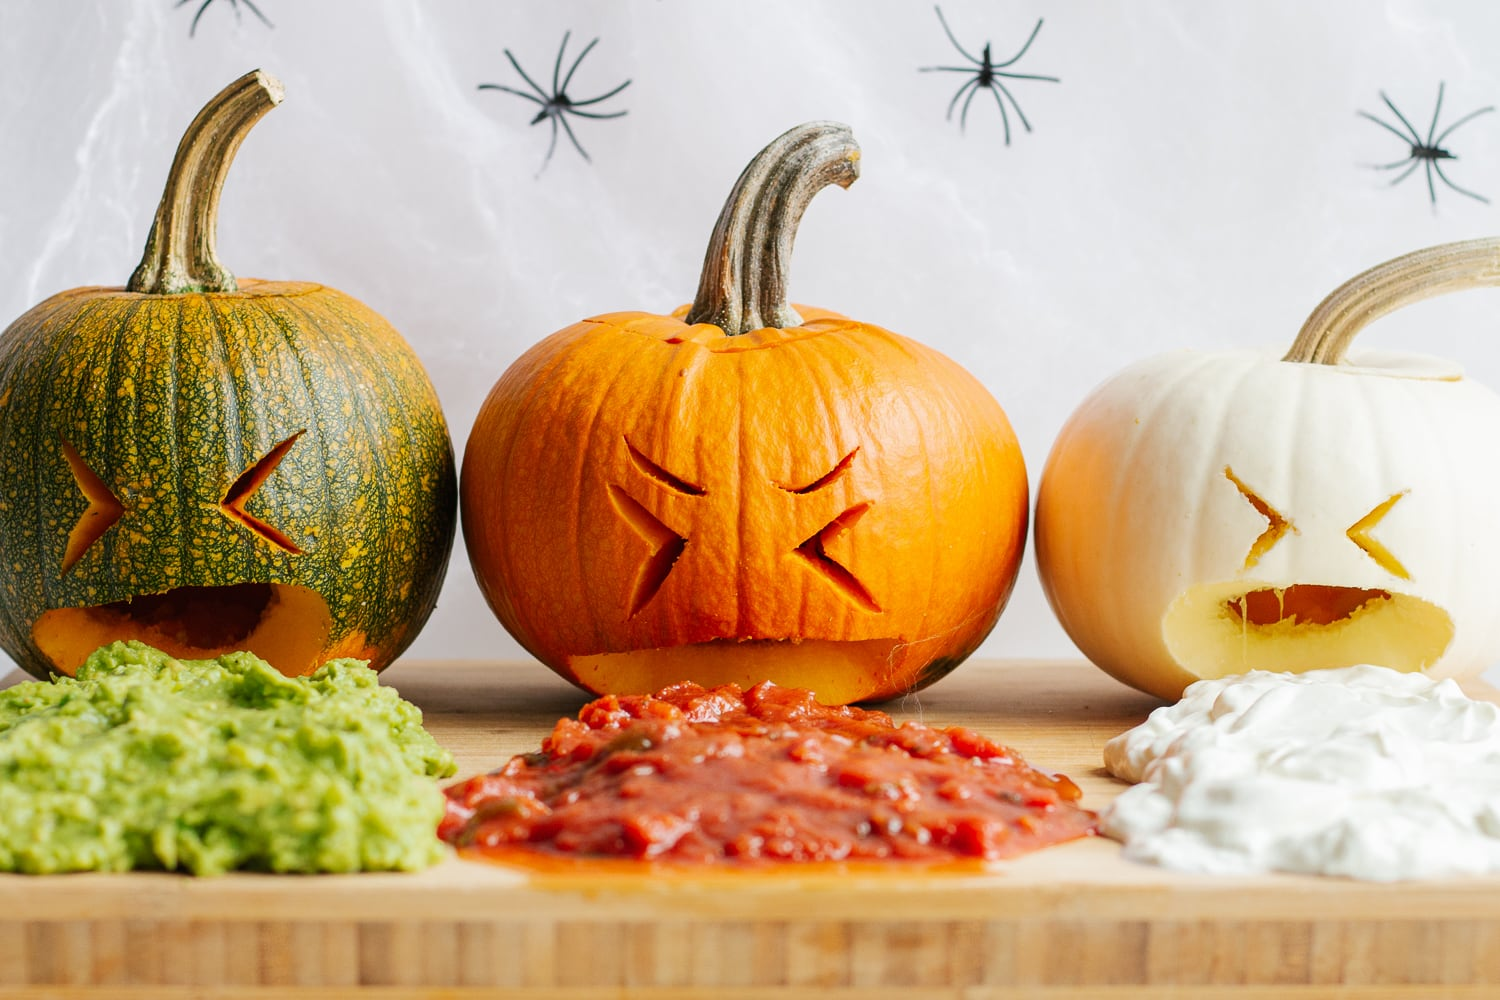 Three small carved pumpkins on a wooden board that look like they are throwing up guacamole, salsa and sour cream.